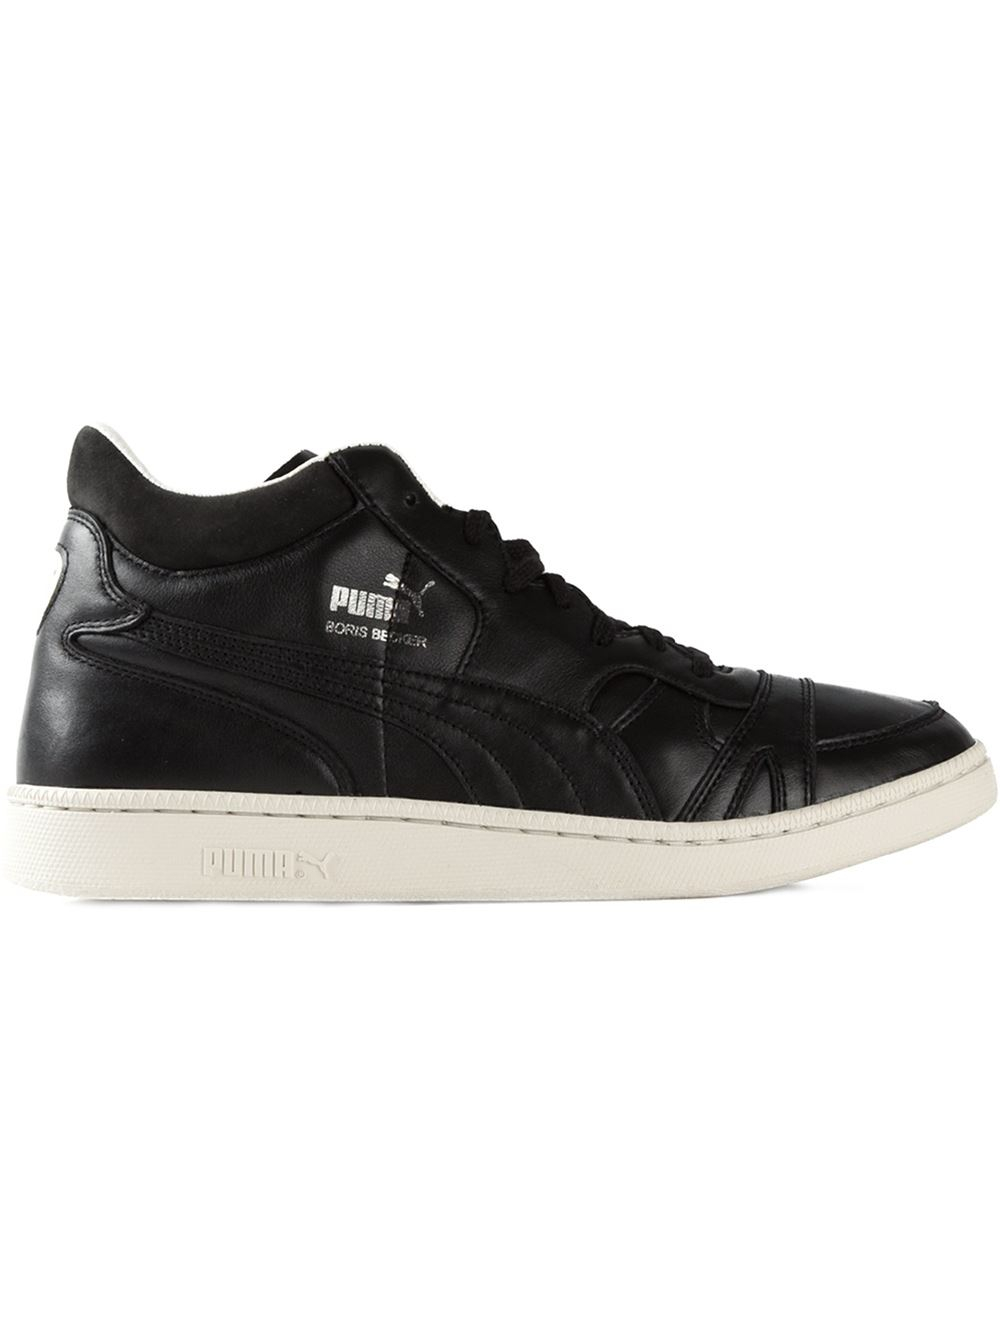 Buy PUMA Adult Suede Classic Shoe and other Fashion Sneakers at xuavawardtan.gq Our wide selection is eligible for free shipping and free returns.